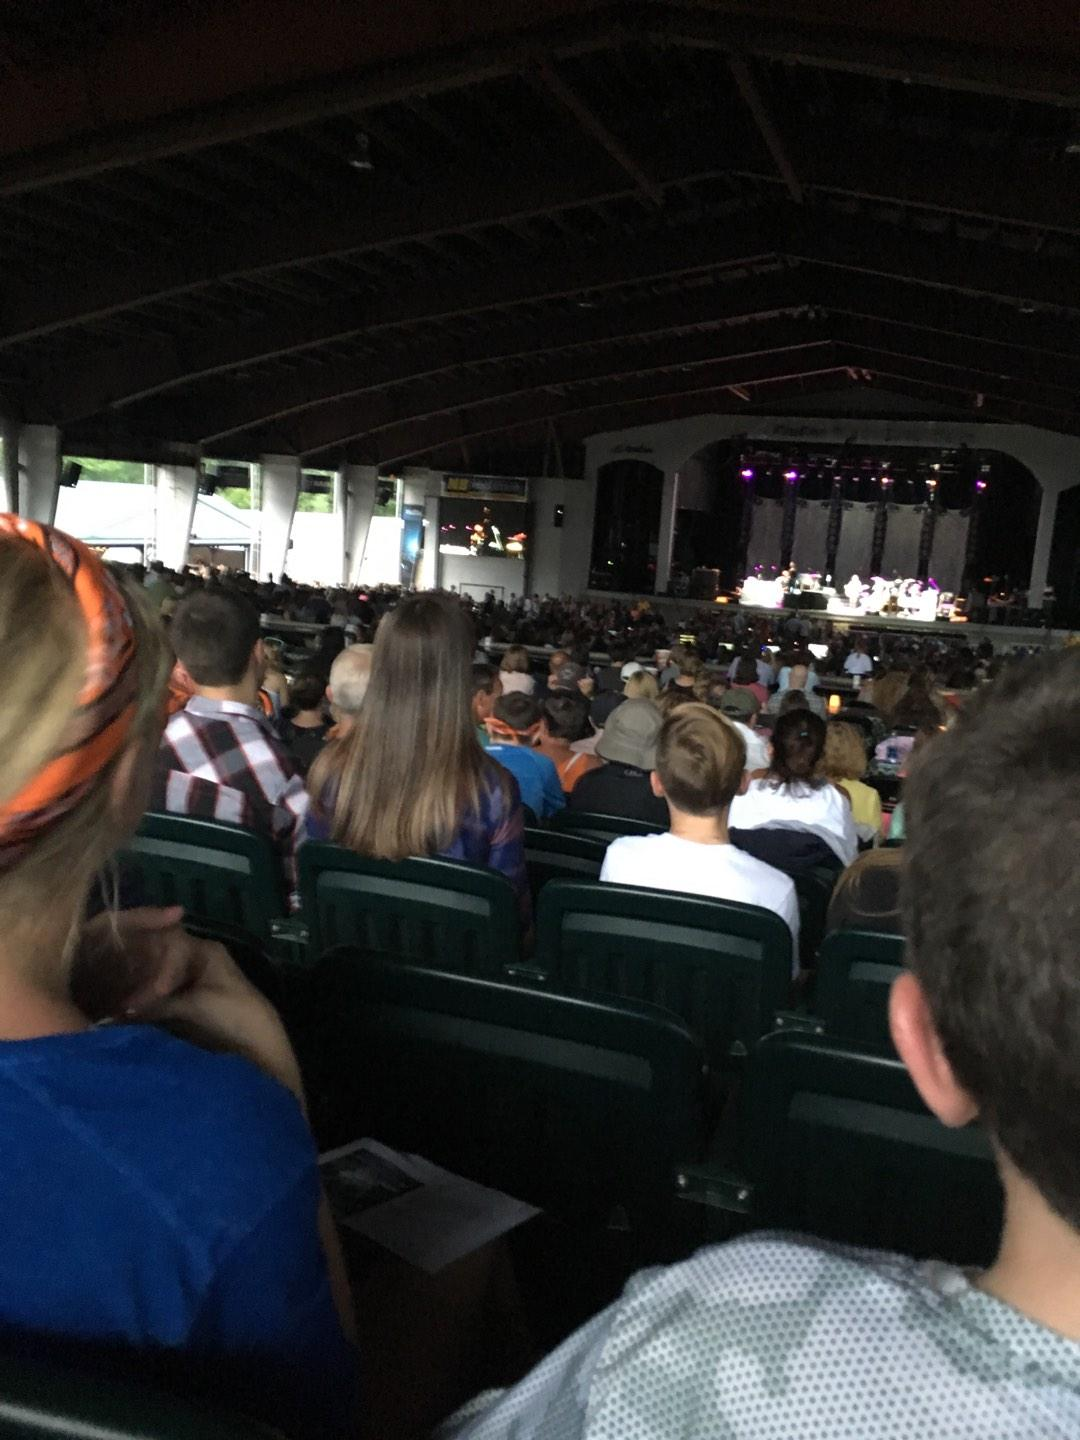 Bank of New Hampshire Pavilion Section 3C Row 7 Seat 19